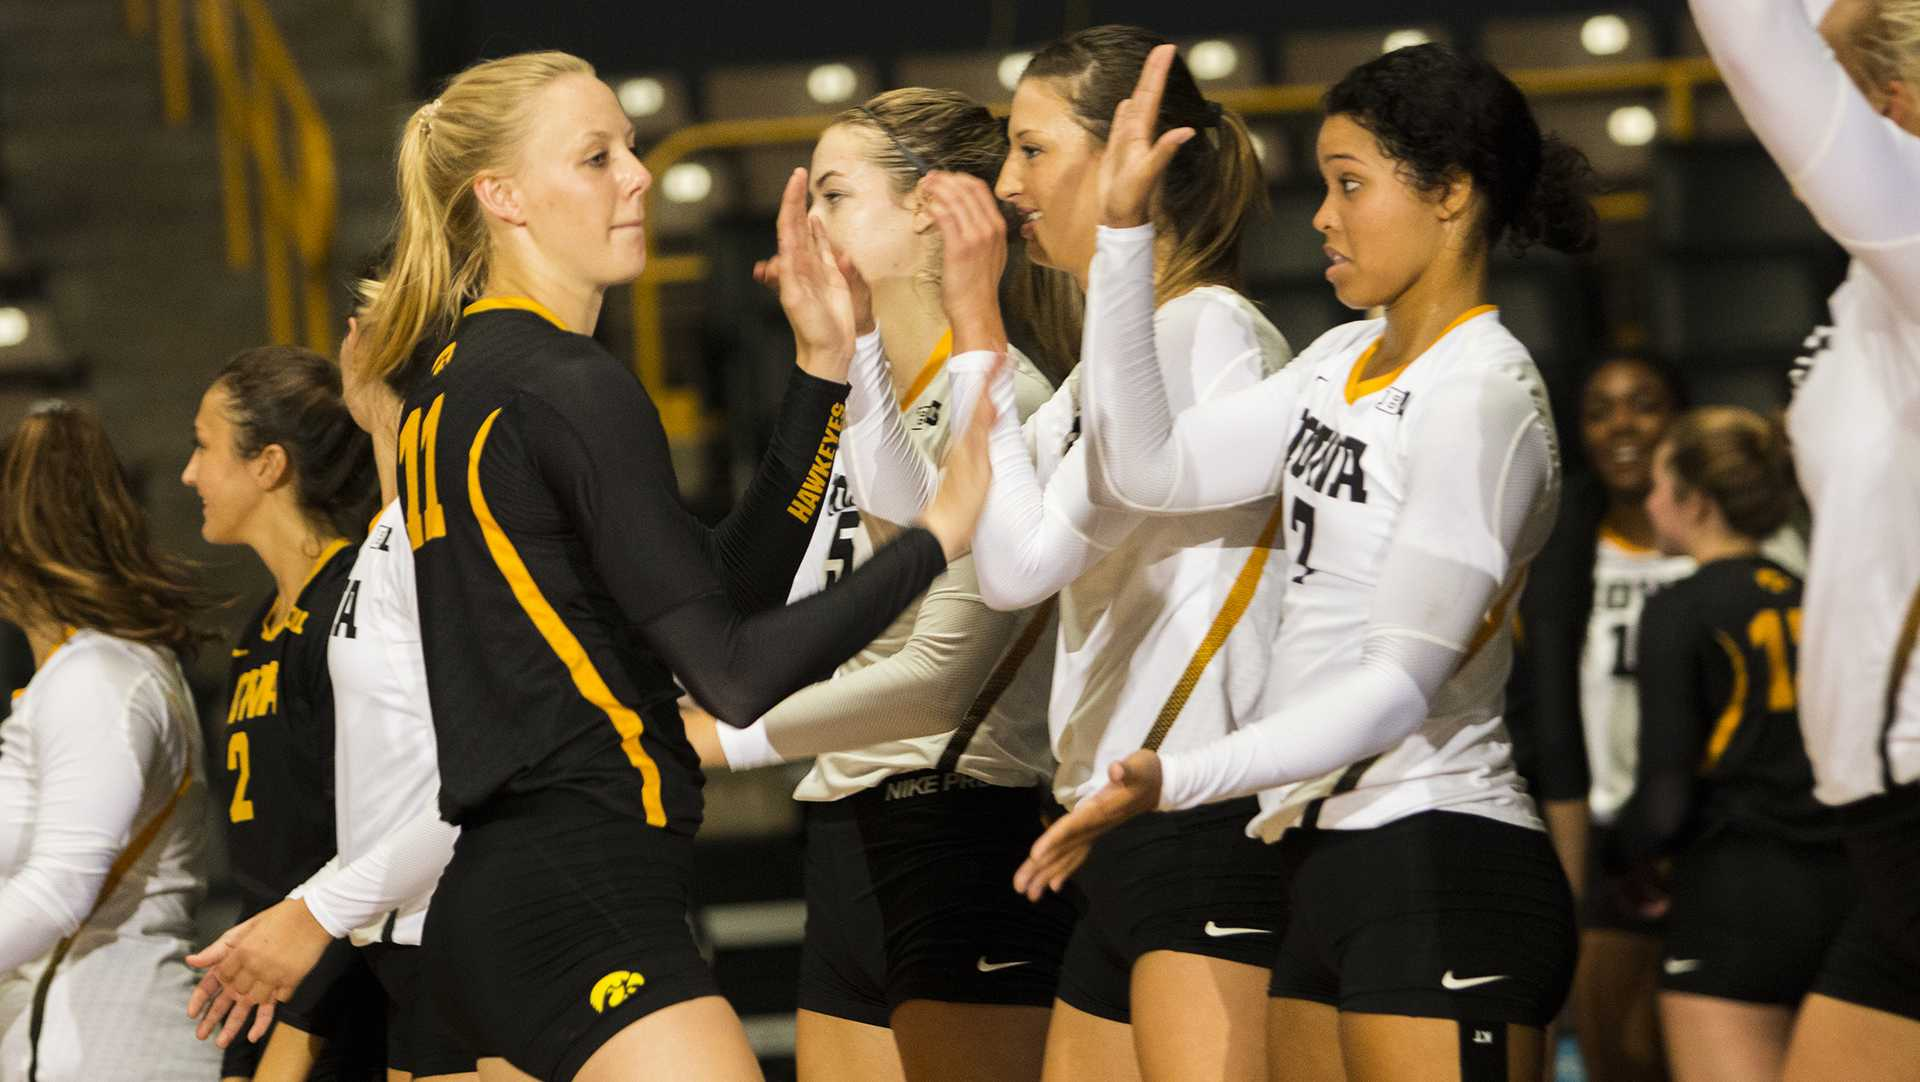 Iowa's Kelsey O'Neill high-fives teammates while going through introductions during the volleyball Black & Gold scrimmage in Carver-Hawkeye Arena on Saturday, Aug. 19, 2017. (Joseph Cress/The Daily Iowan)